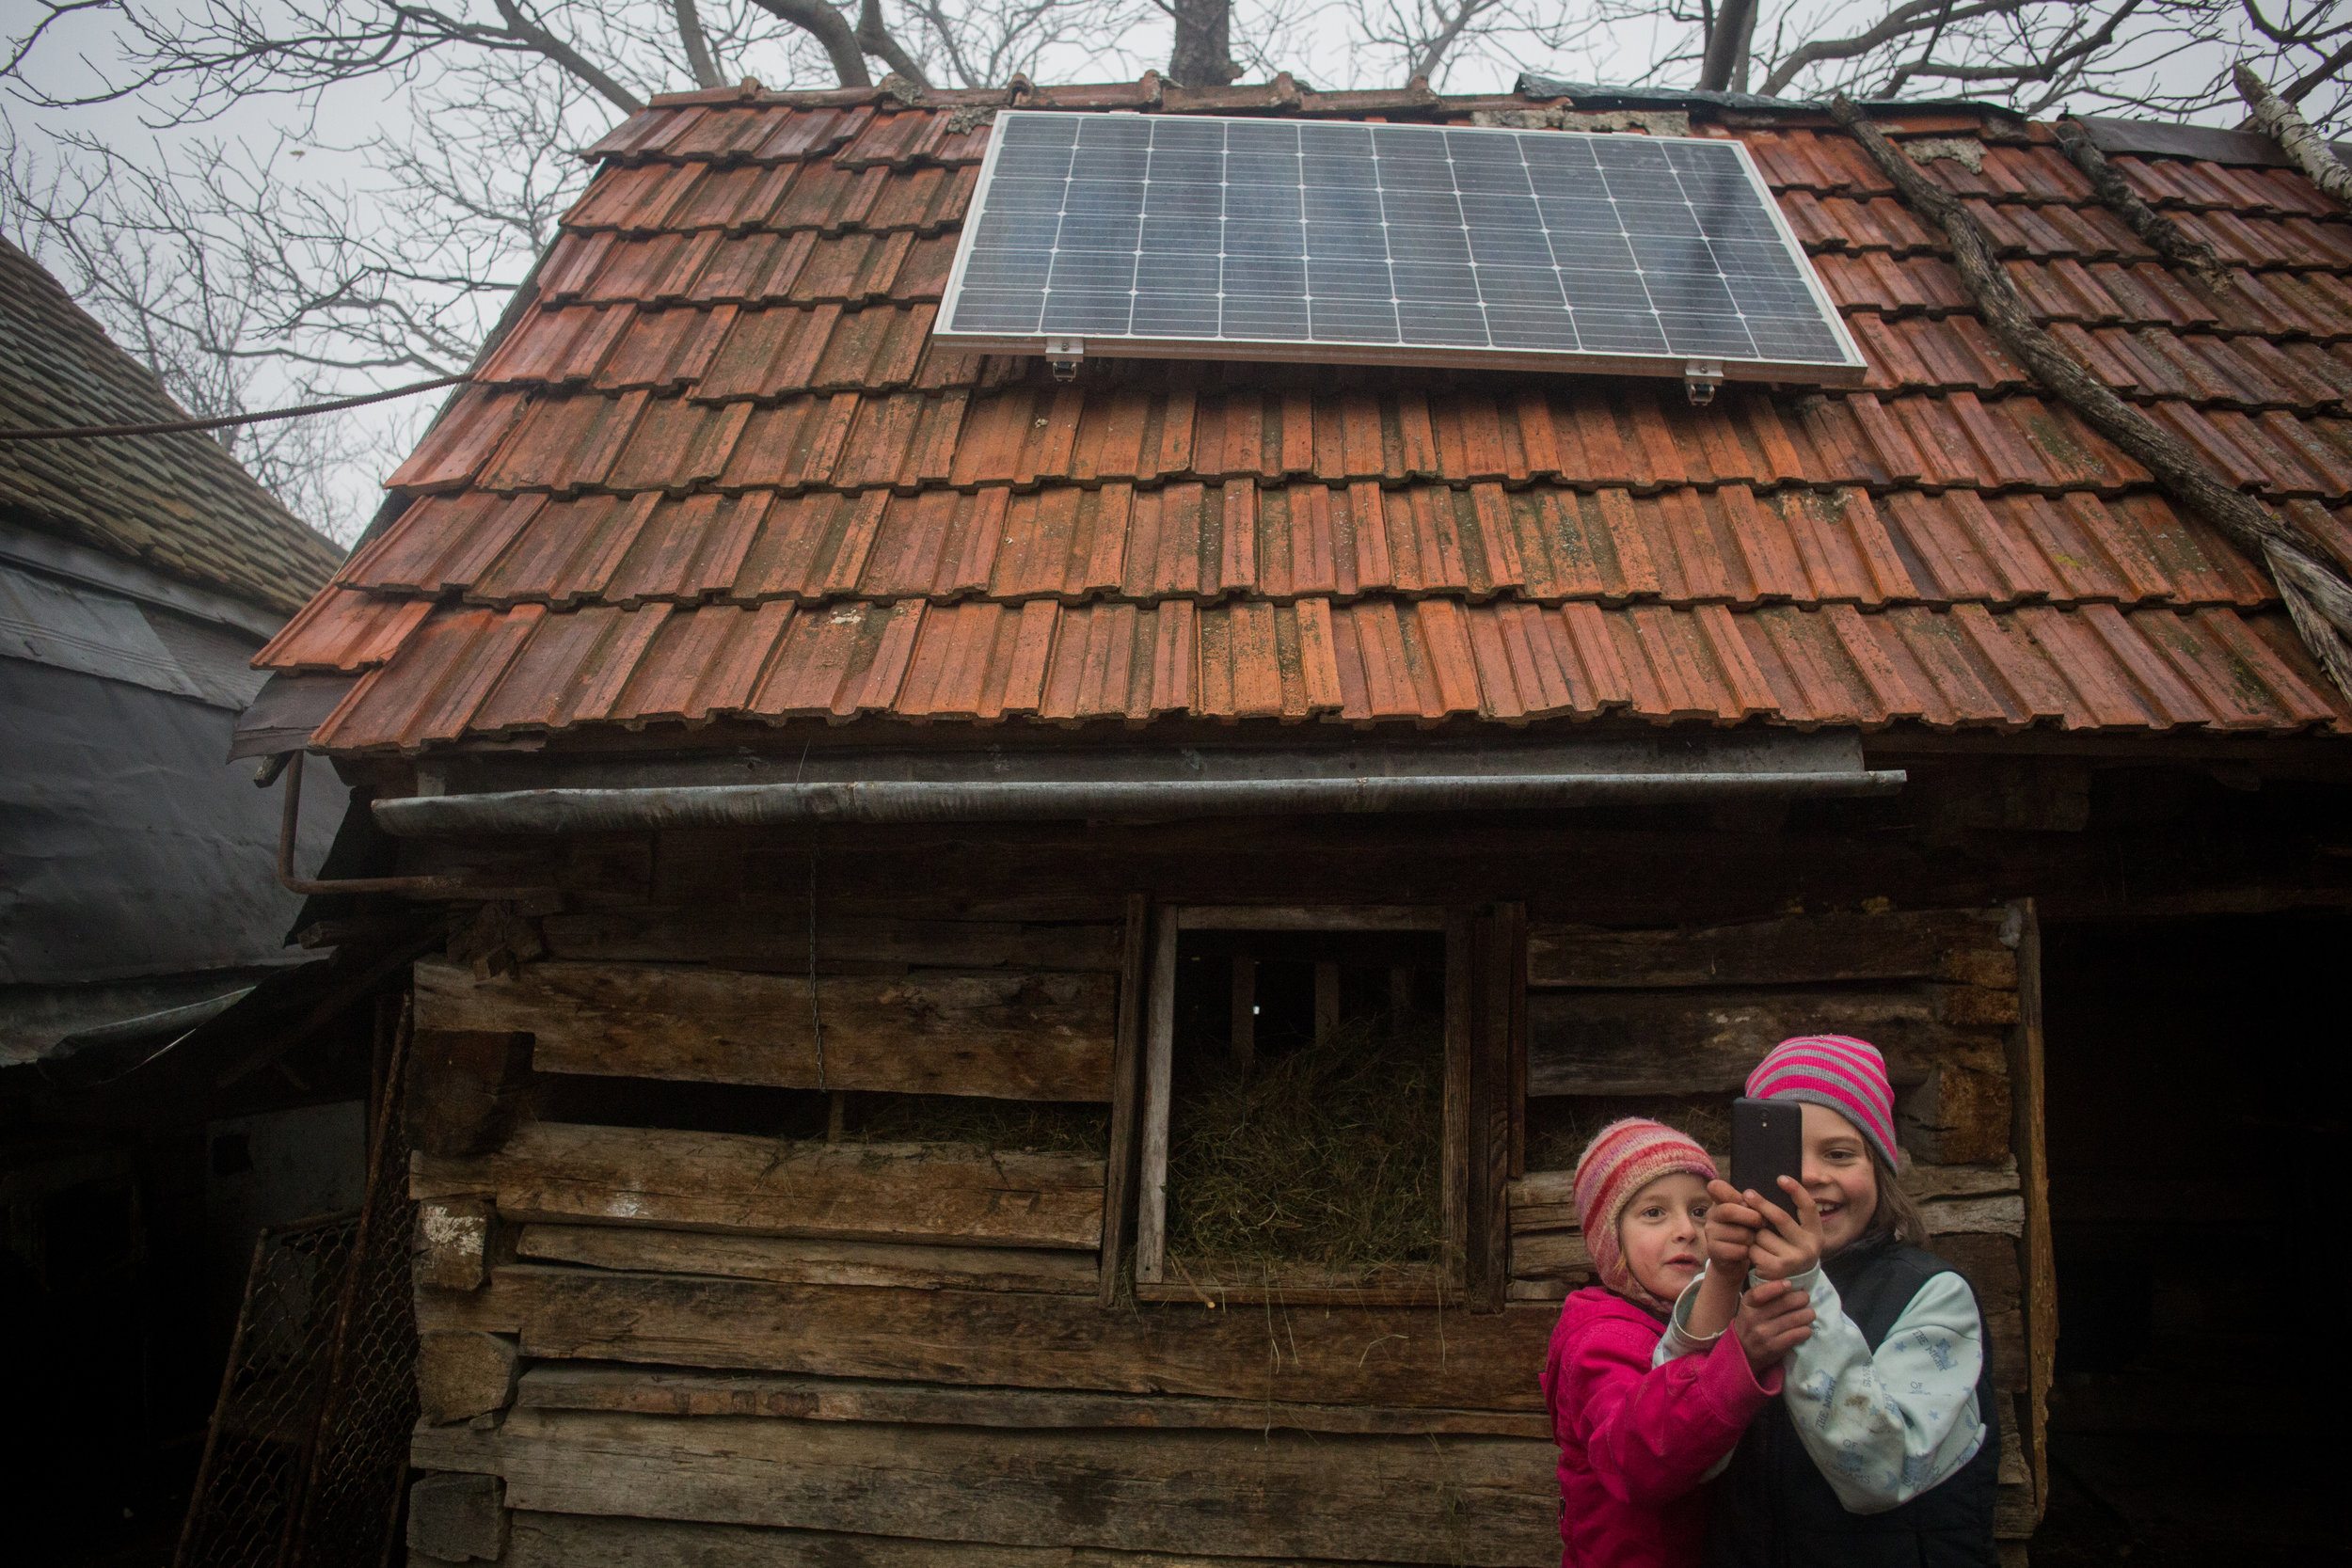 HOLBAV •  Mariana (7) and Claudia (9) Stoicheciu take pictures with their phones; thanks to solar panels, they can recharge batteries at home.